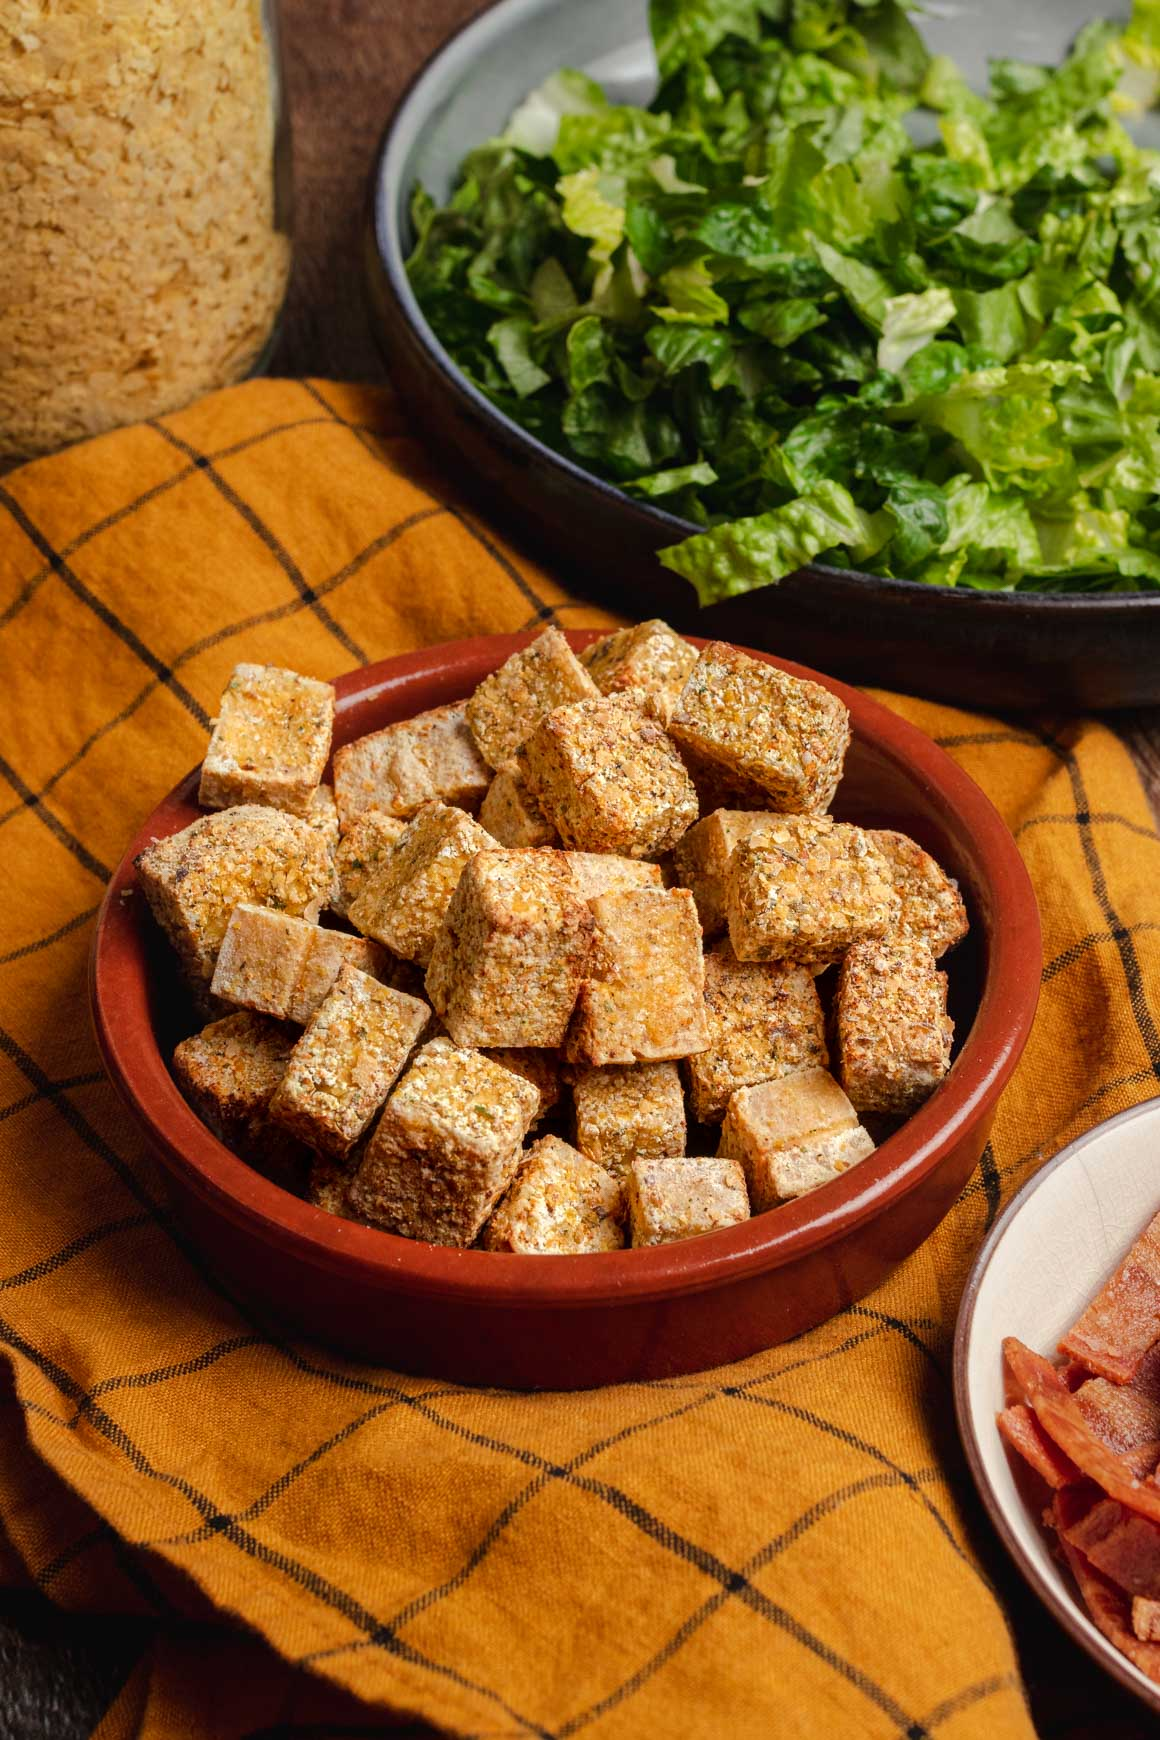 Side view shot of a bowl of crispy tofu cubes with a yellow cloth underneath. In the corners of the image you can see a bowl of shredded iceberg lettuce, a bowl of crispy vegan bacon, and a jar of nutritional yeast.